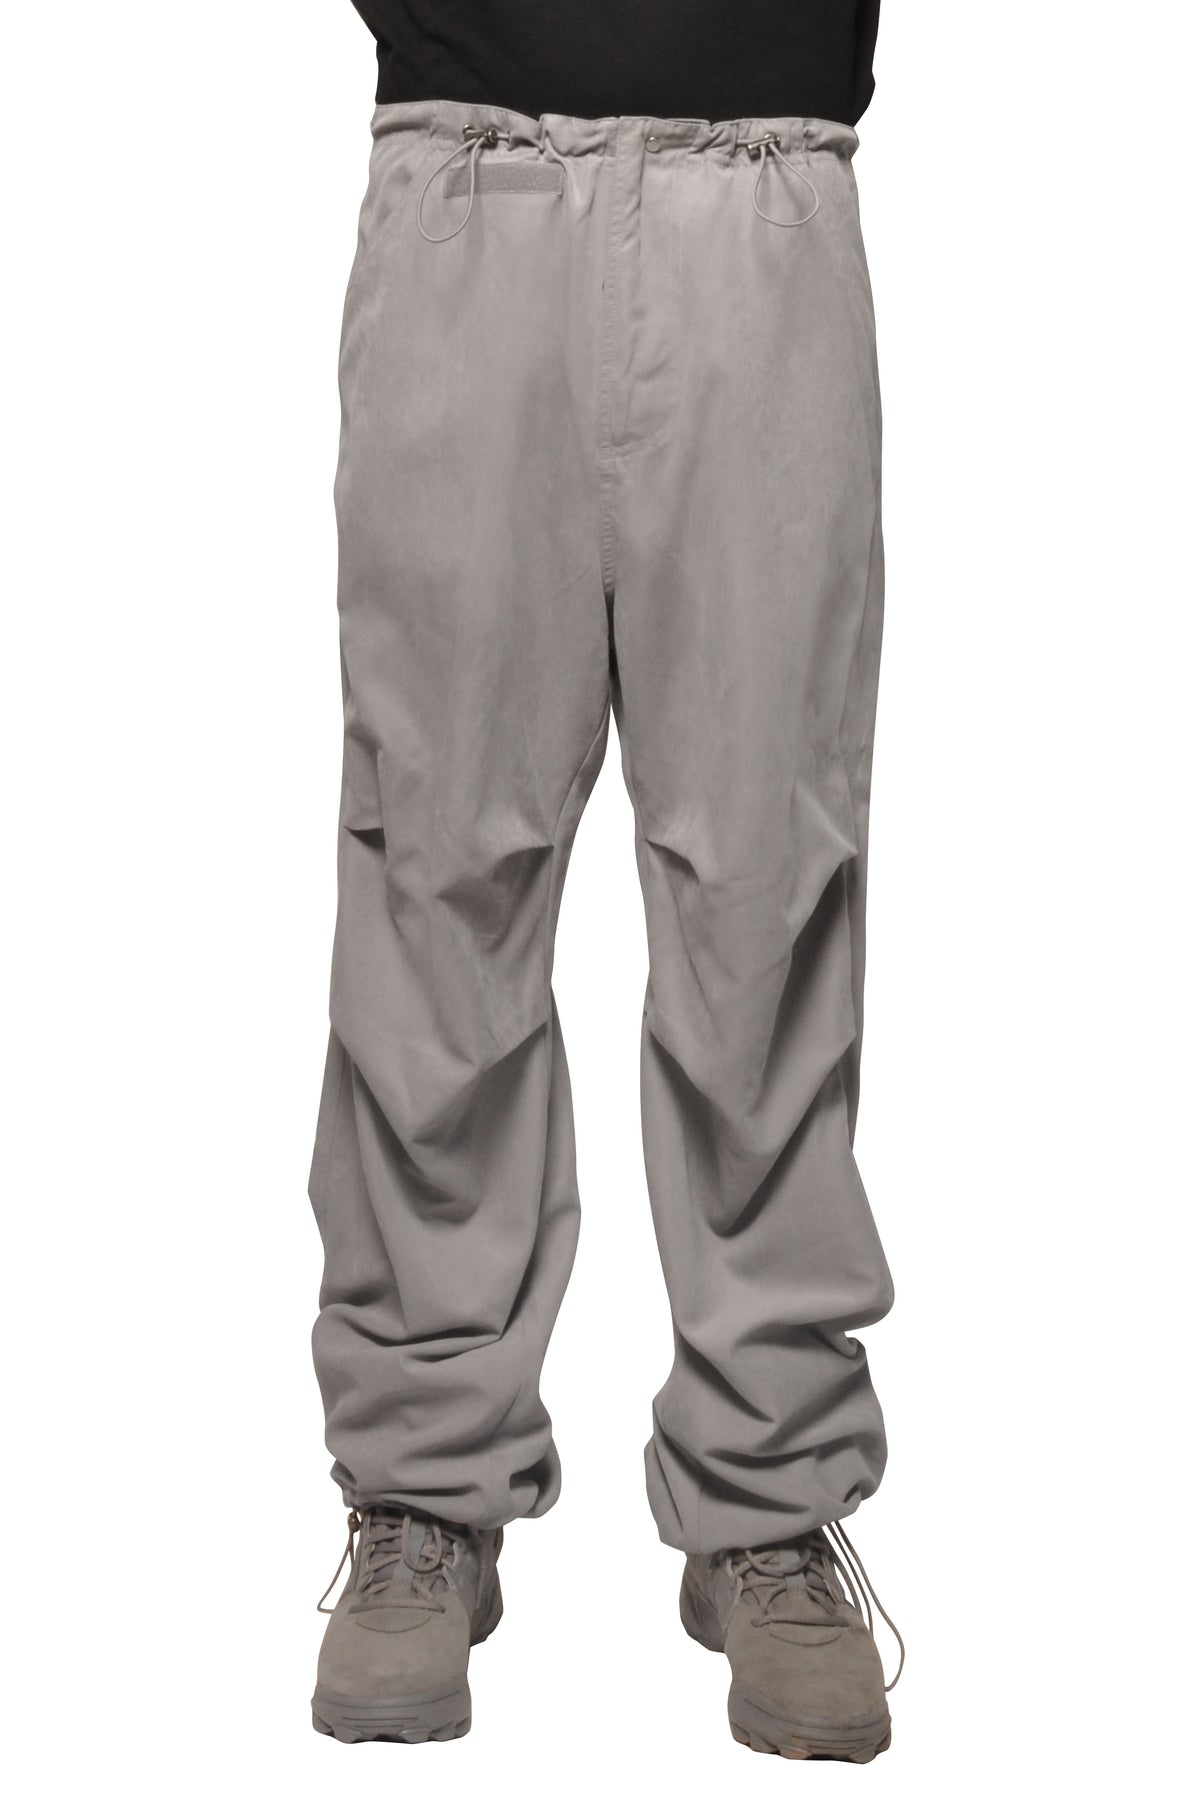 032c COSMIC WORKSHOP 'Rave' Pant Grey - 032c